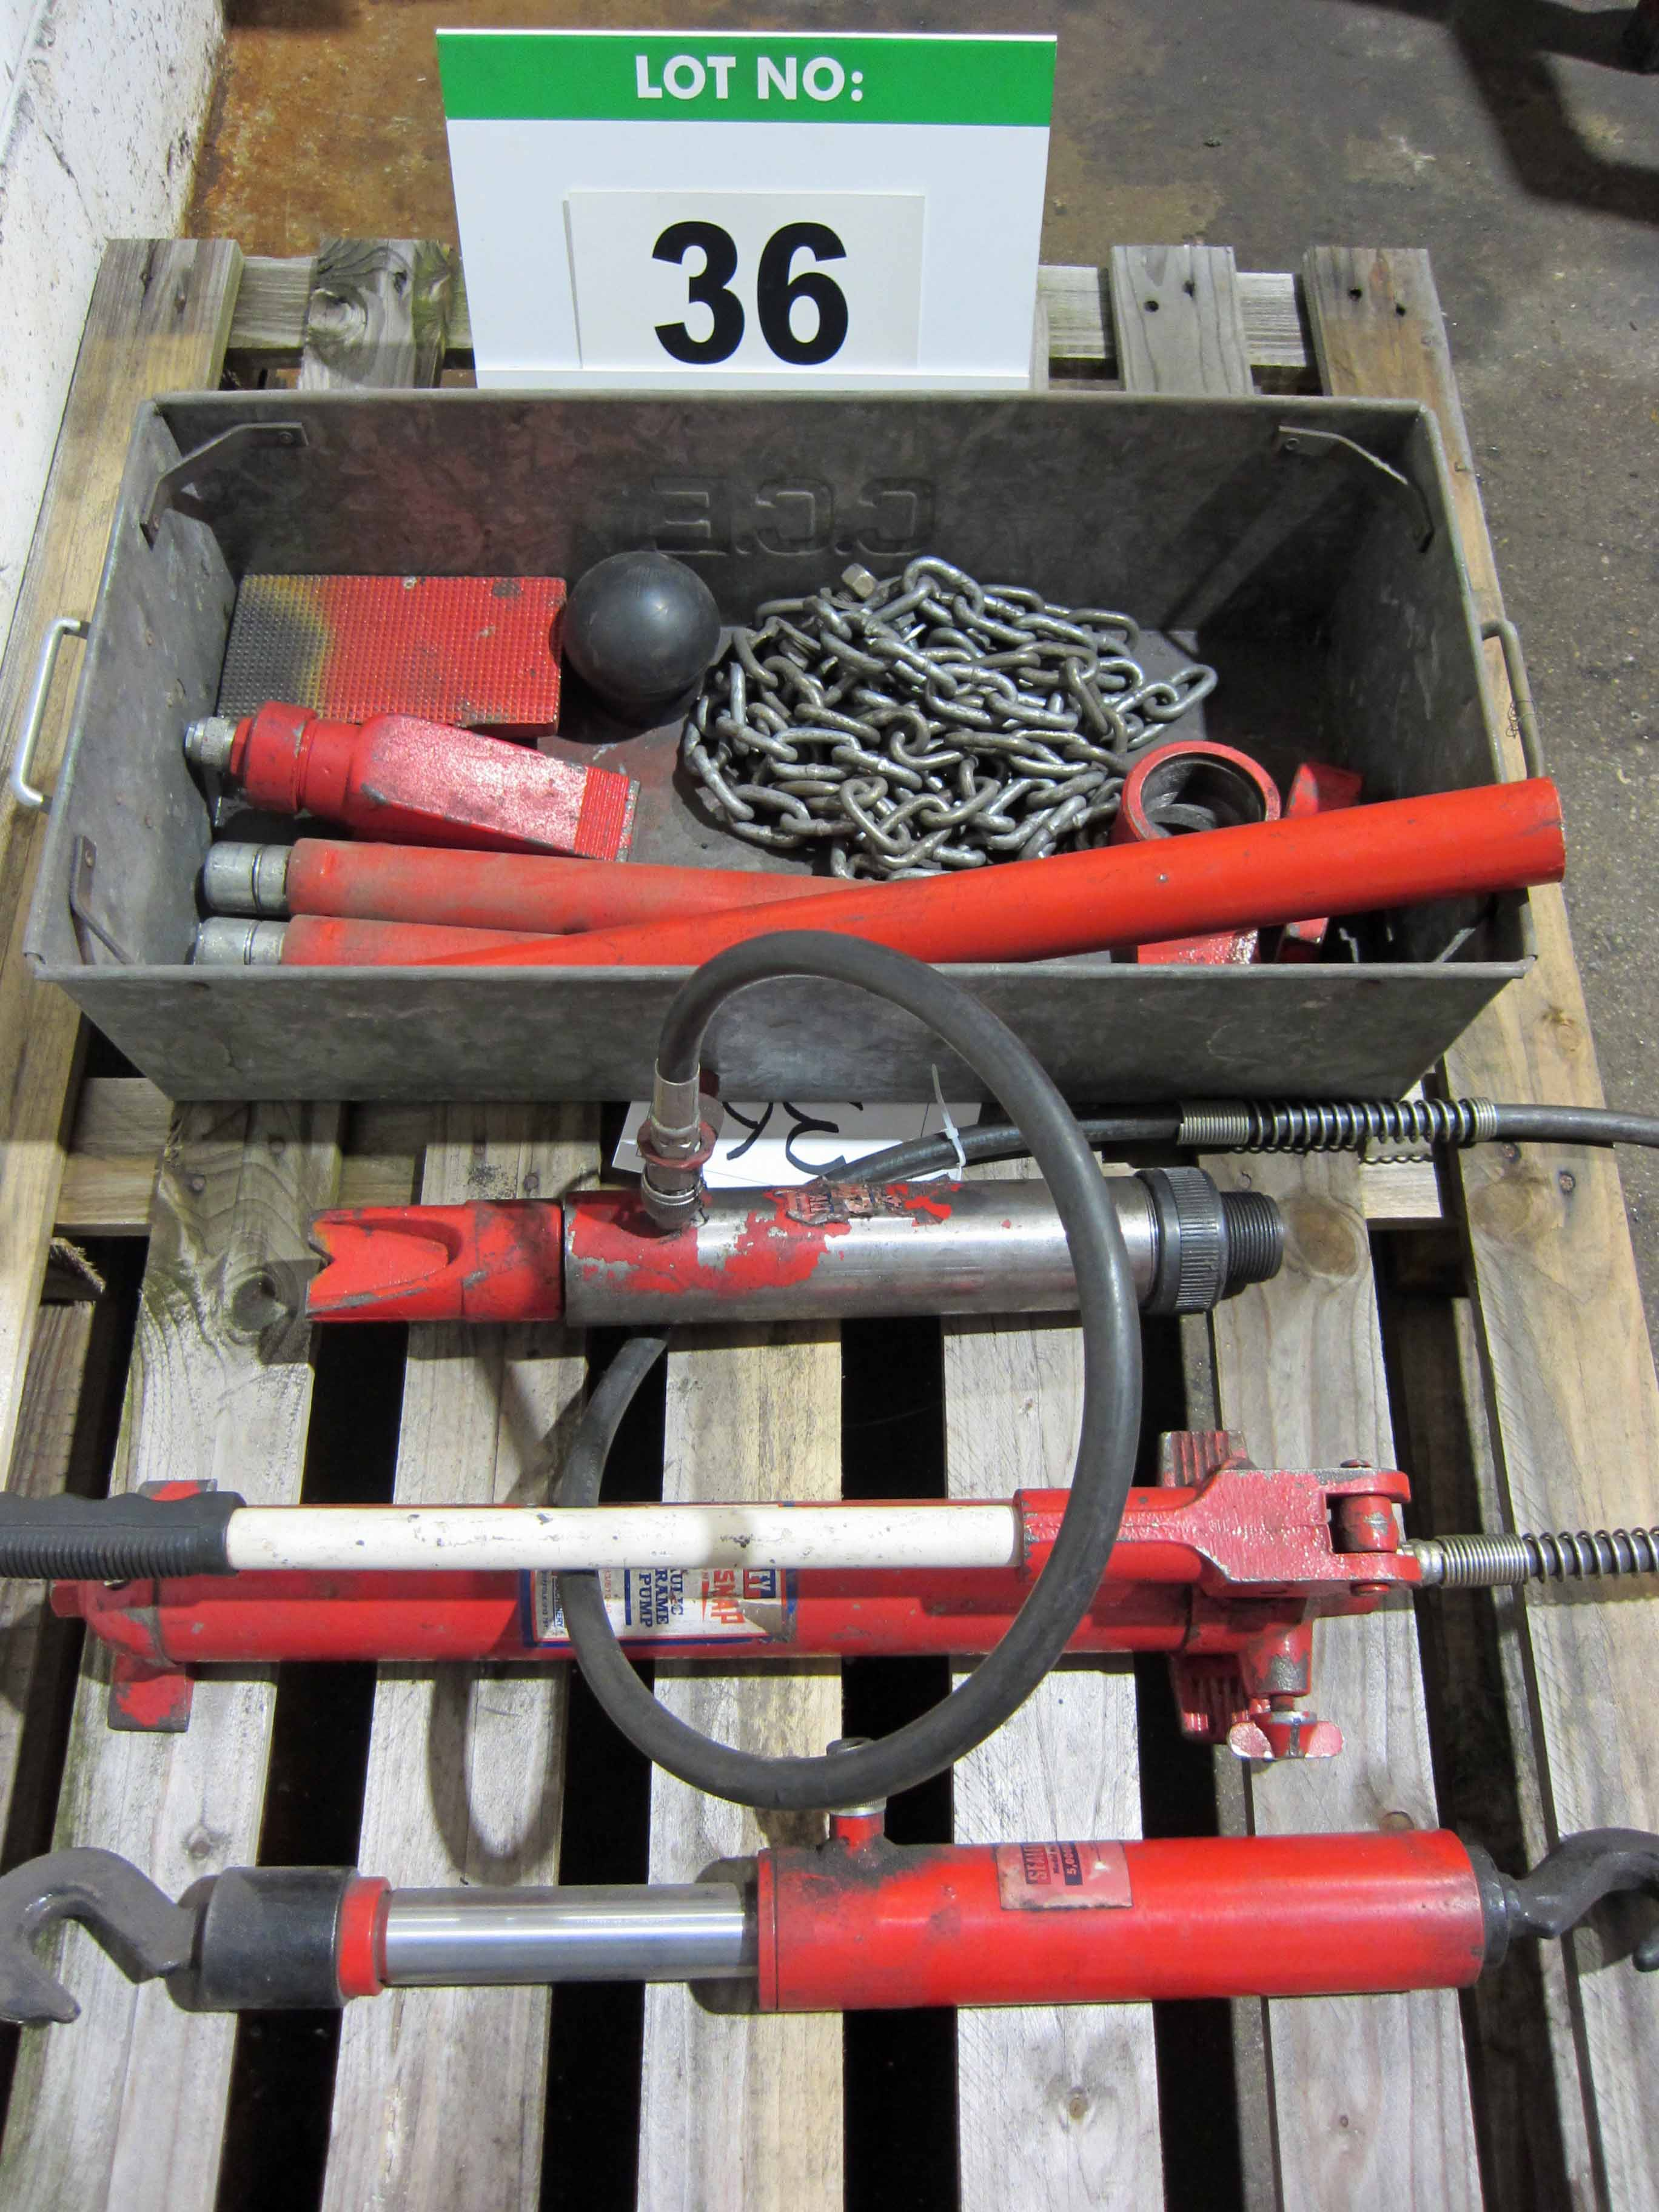 A SEALEY Super Snap 10-Ton Manual Hydraulic Ram System and Associated Fittings, Chains, etc. - Image 2 of 4